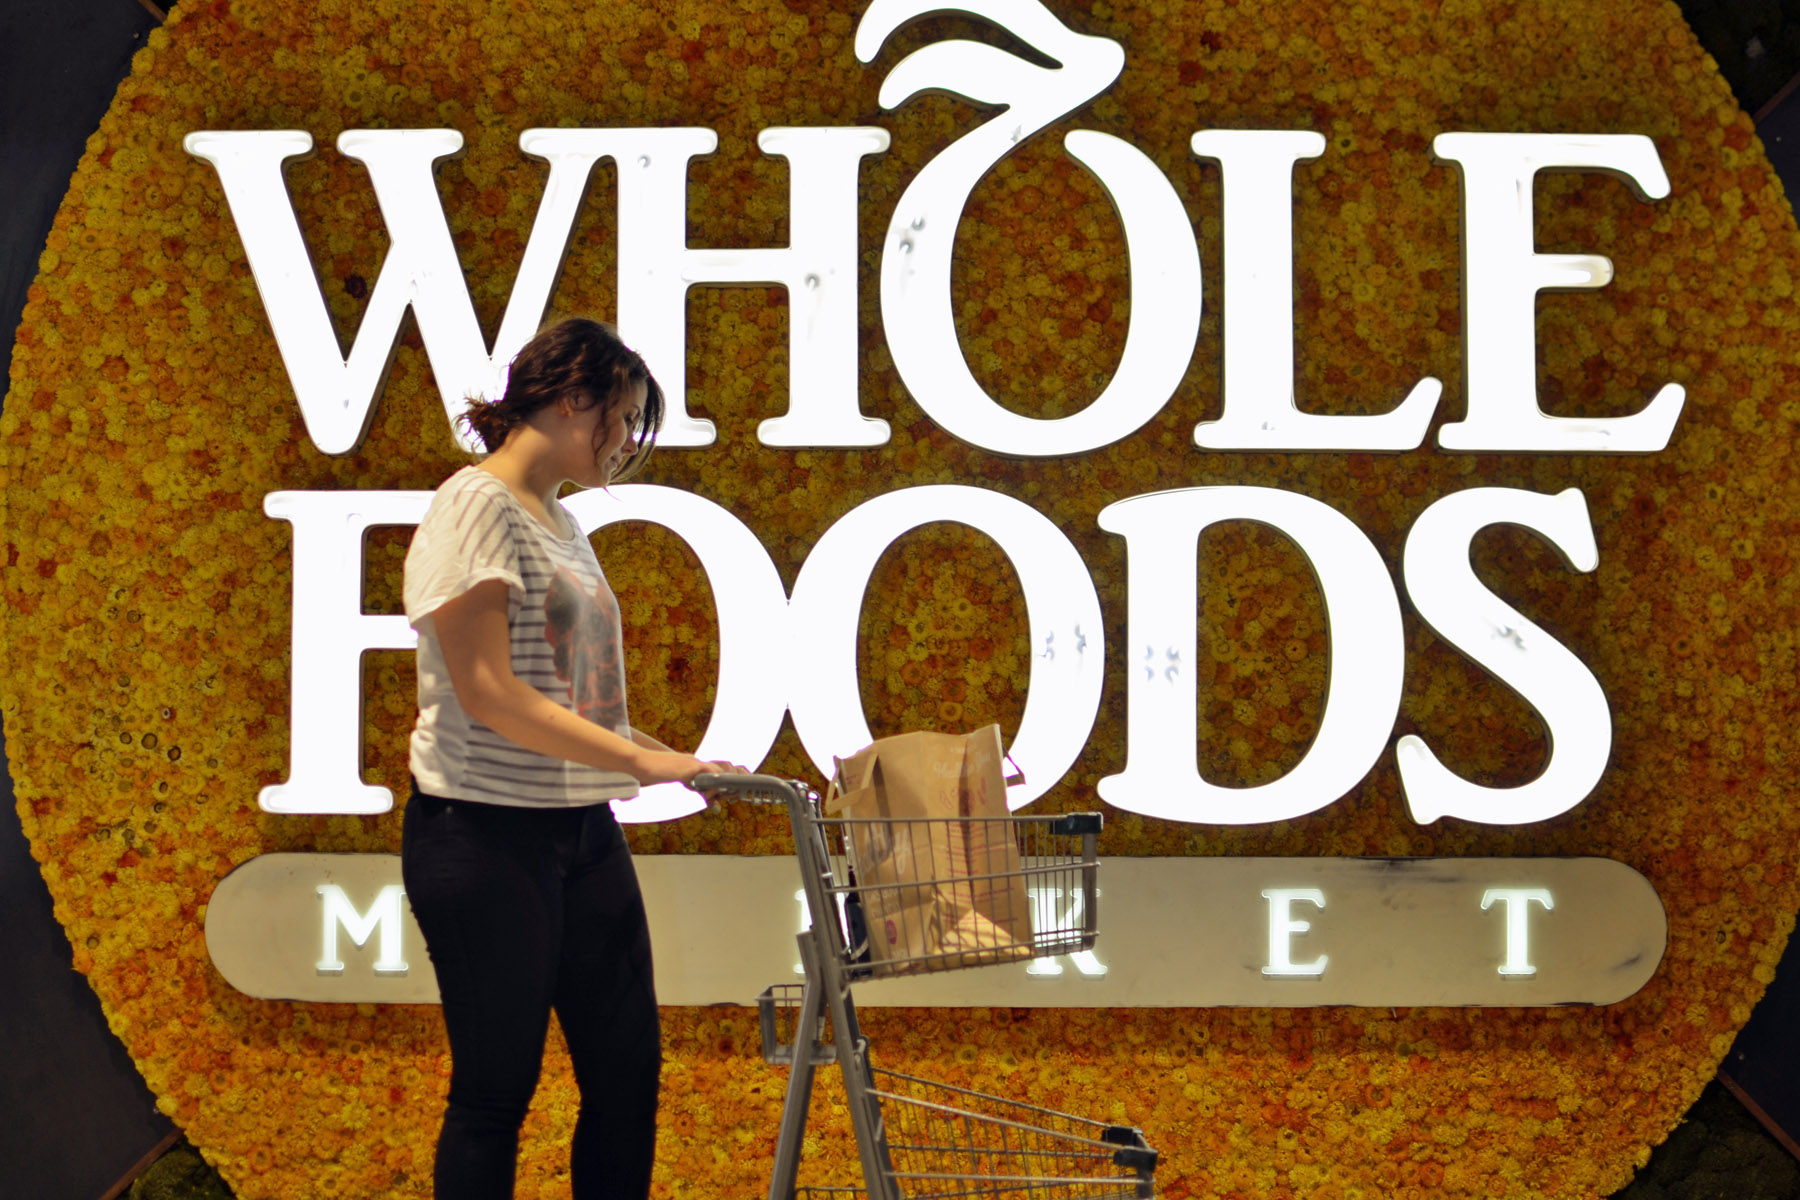 Whole Foods Market slashes prices - internet starts dancing with joy